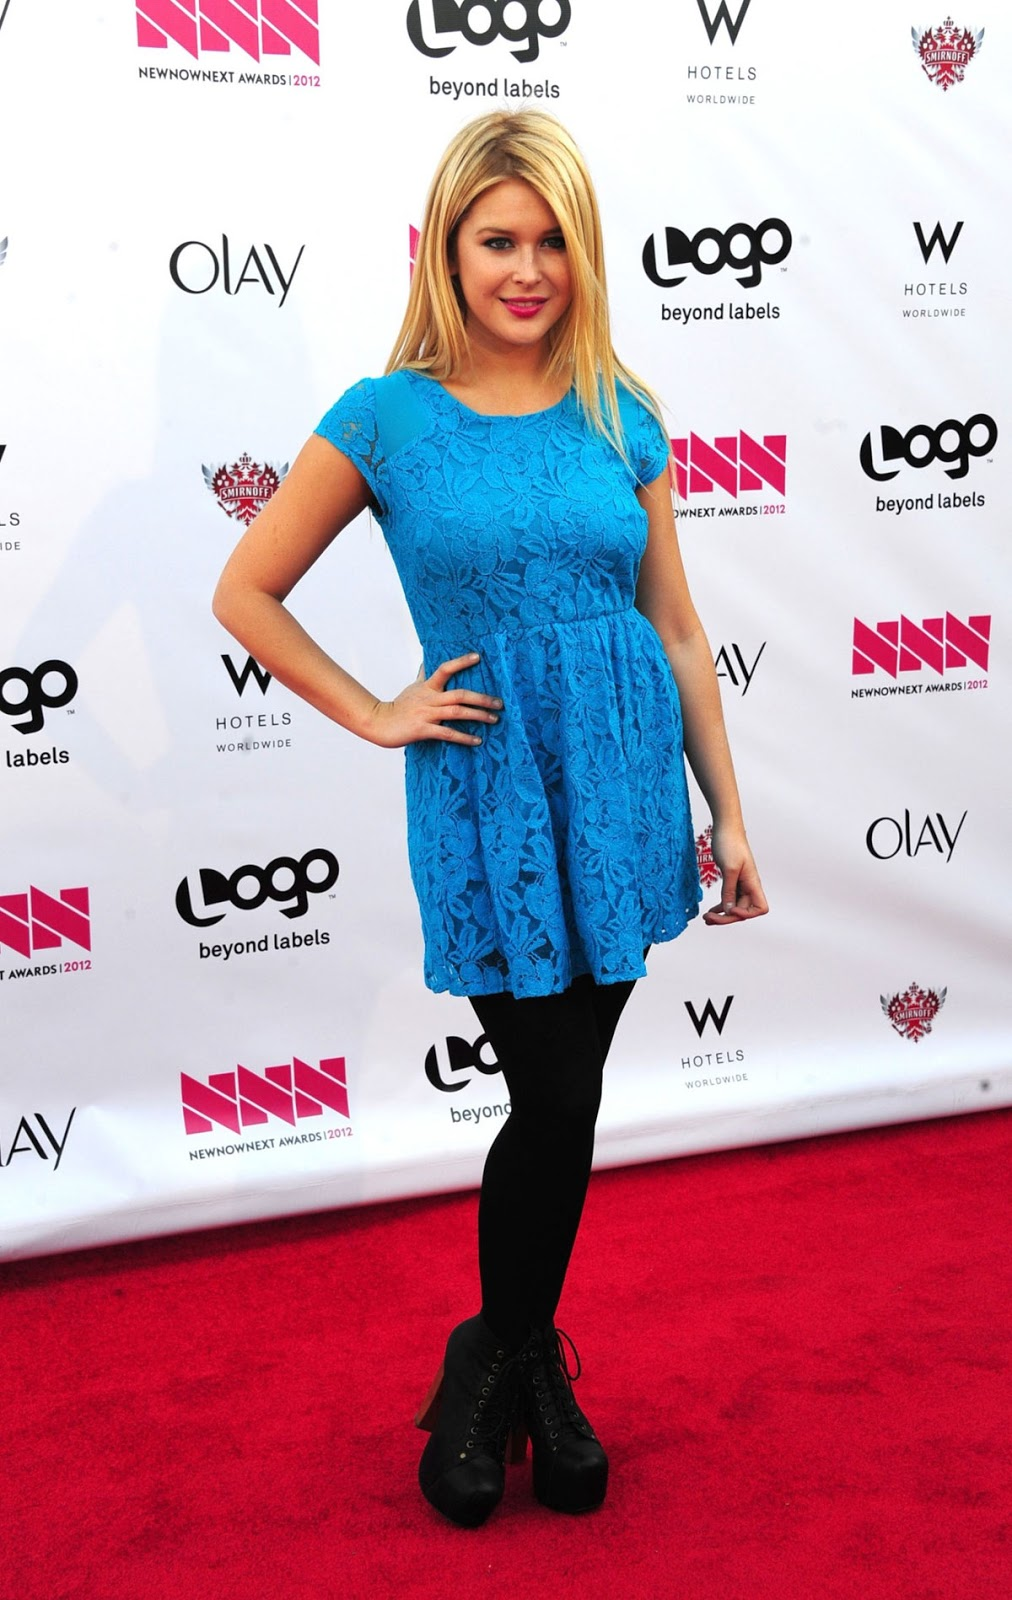 Renee Olstead At Logos New now next Awards 2012 In Hollywood